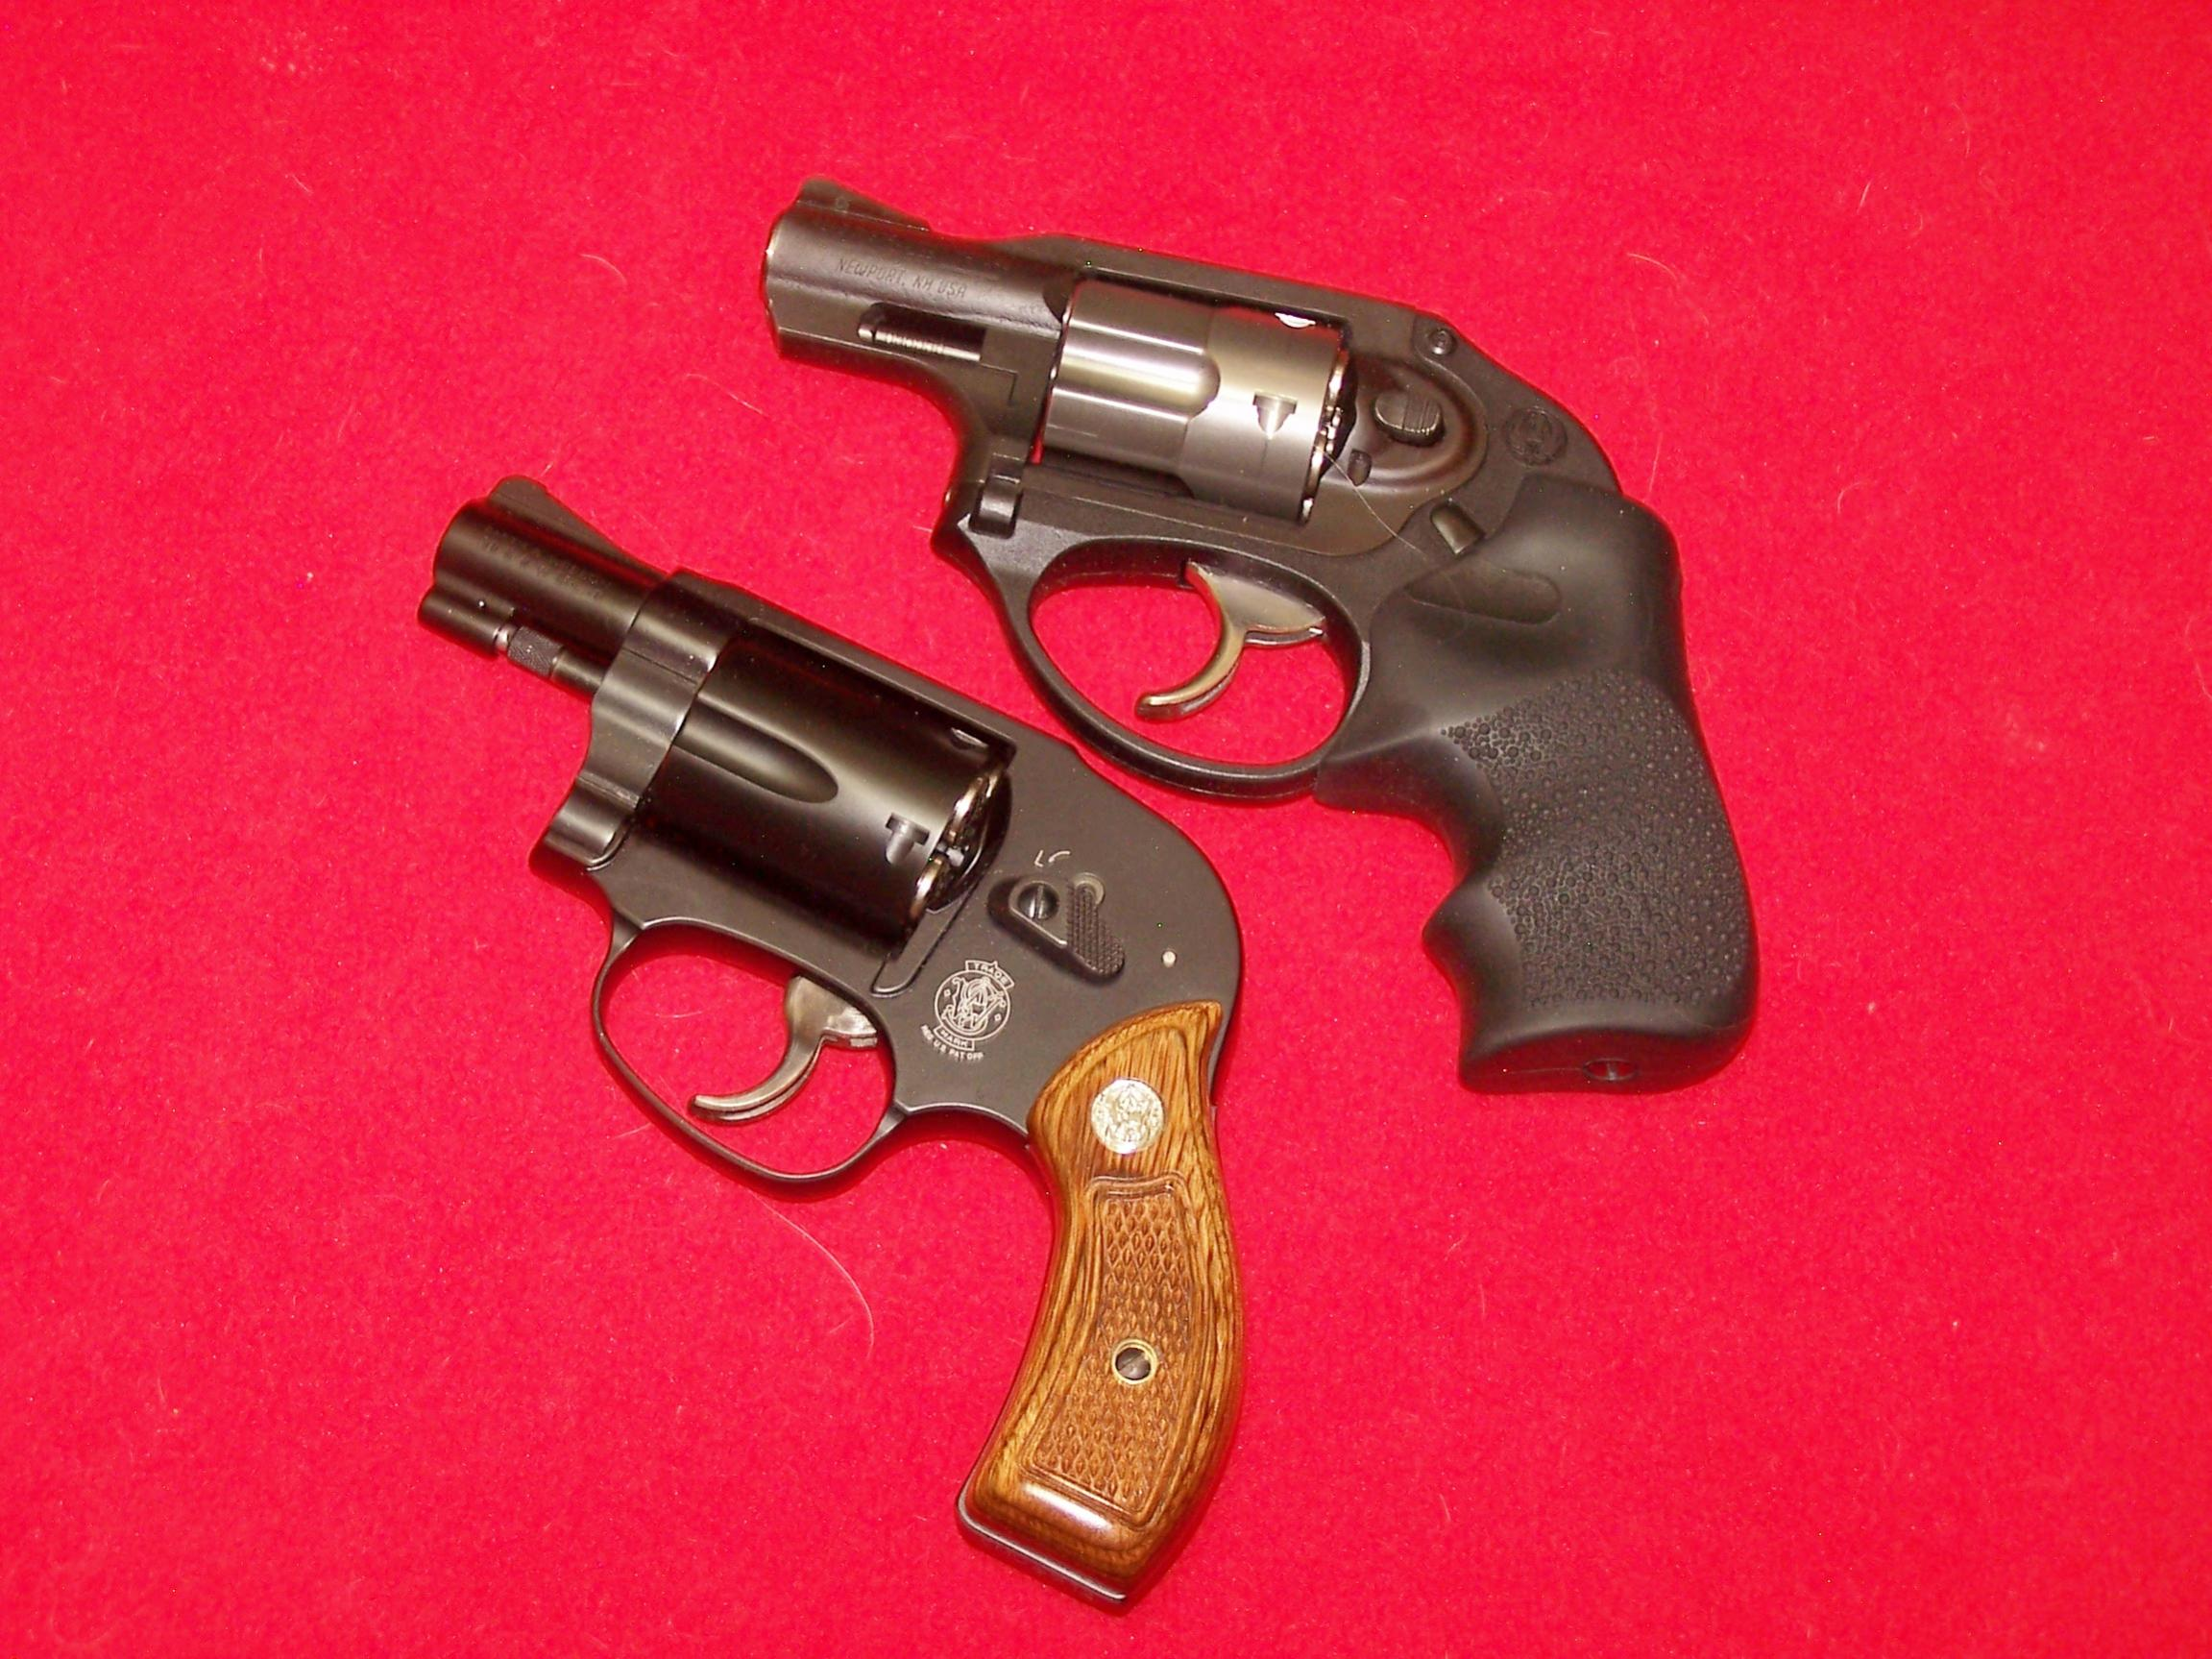 Ruger sp101 small enough for summer carry or better for winter carry then my XD?-024.jpg